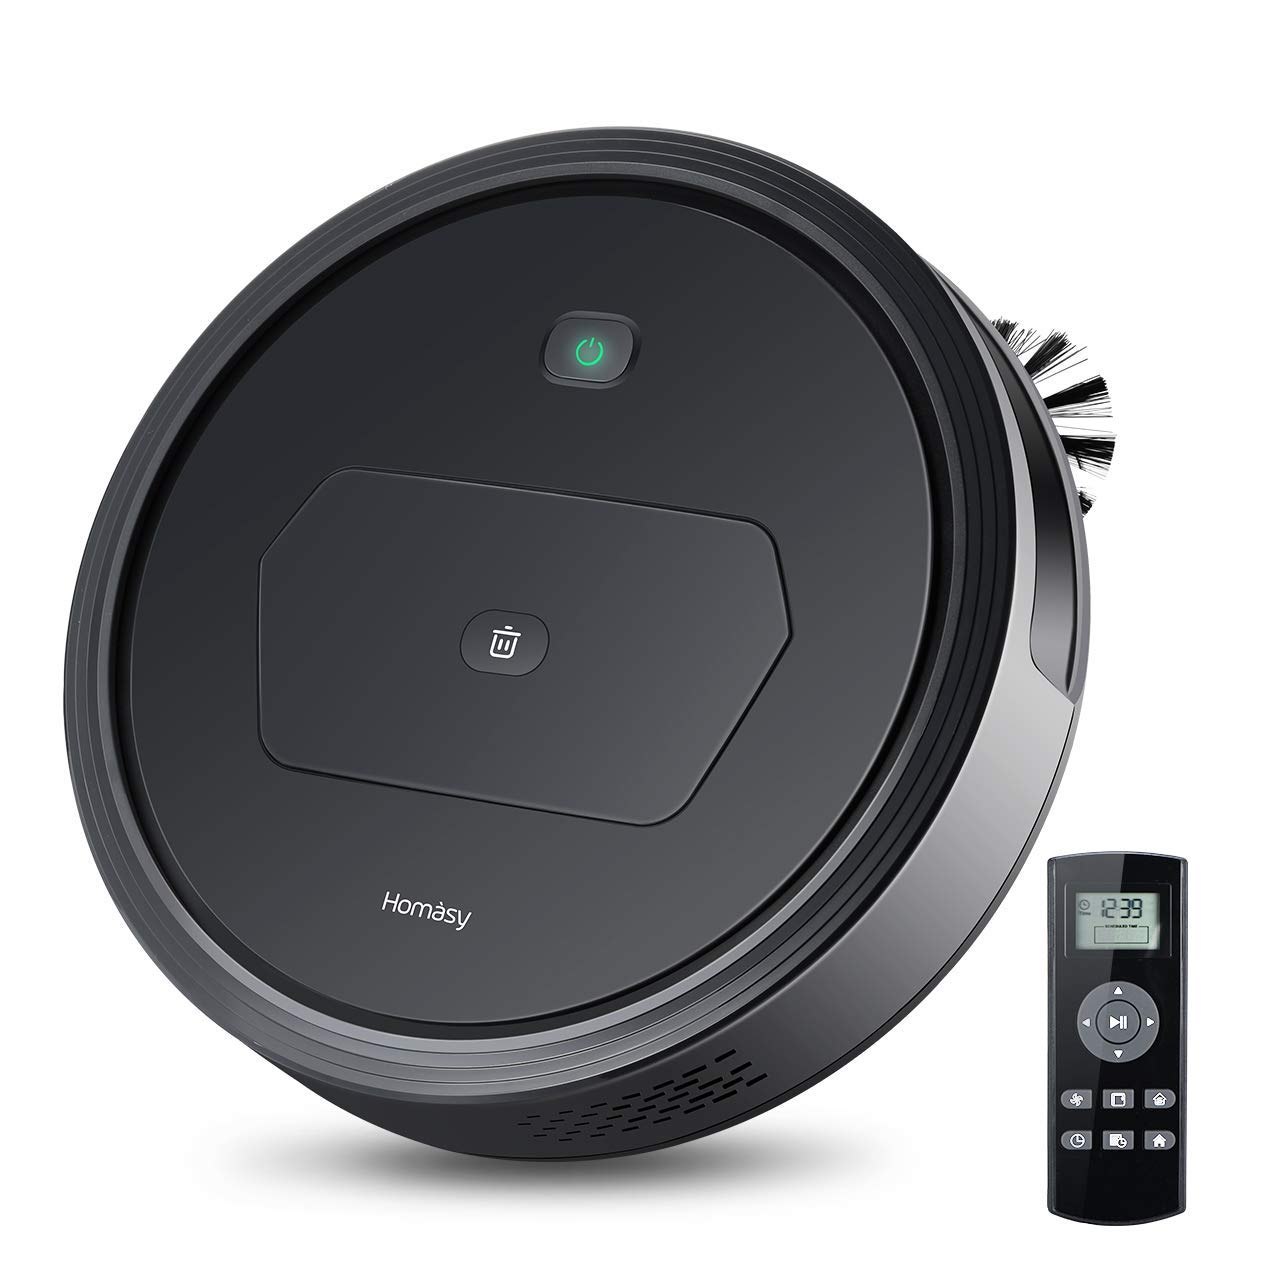 Black Homasy Self-Charging Robot Vacuum Cleaner with 1500PA Max Power Suction with HEPA Filter, 4 Modes Cleaning for Pet Hair, Carpets, Hard Floors(Black)